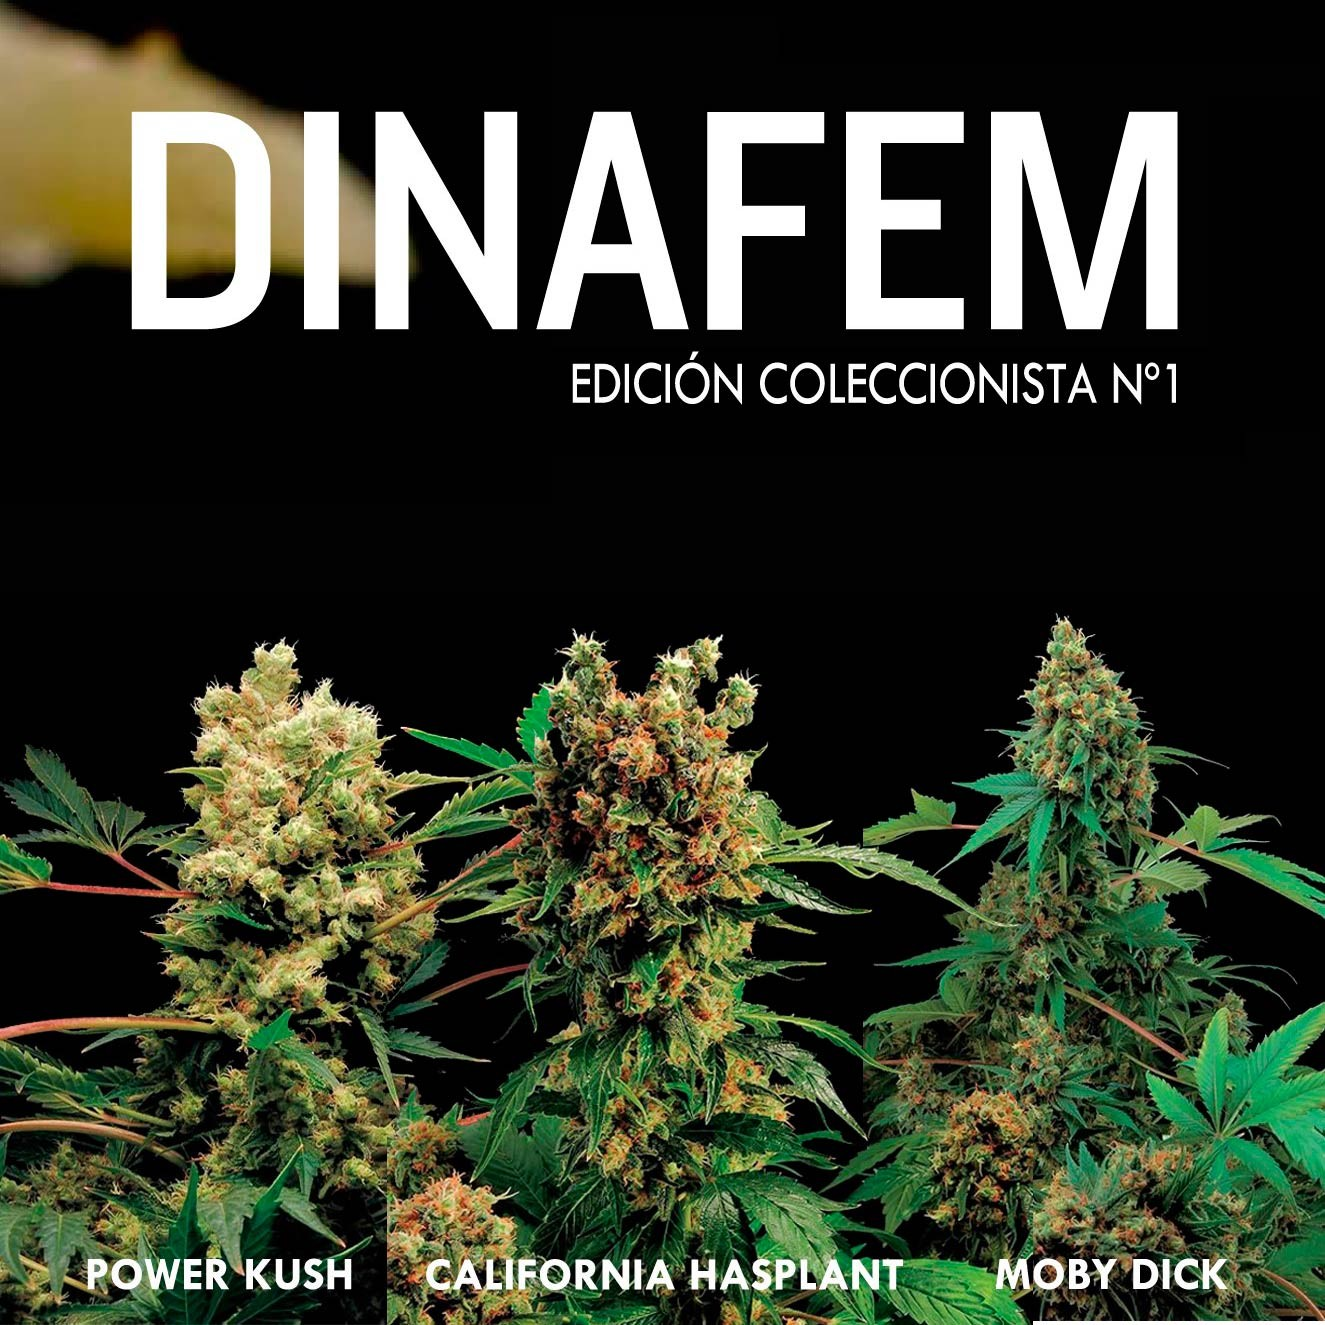 Dinafem collector #1 6 seeds